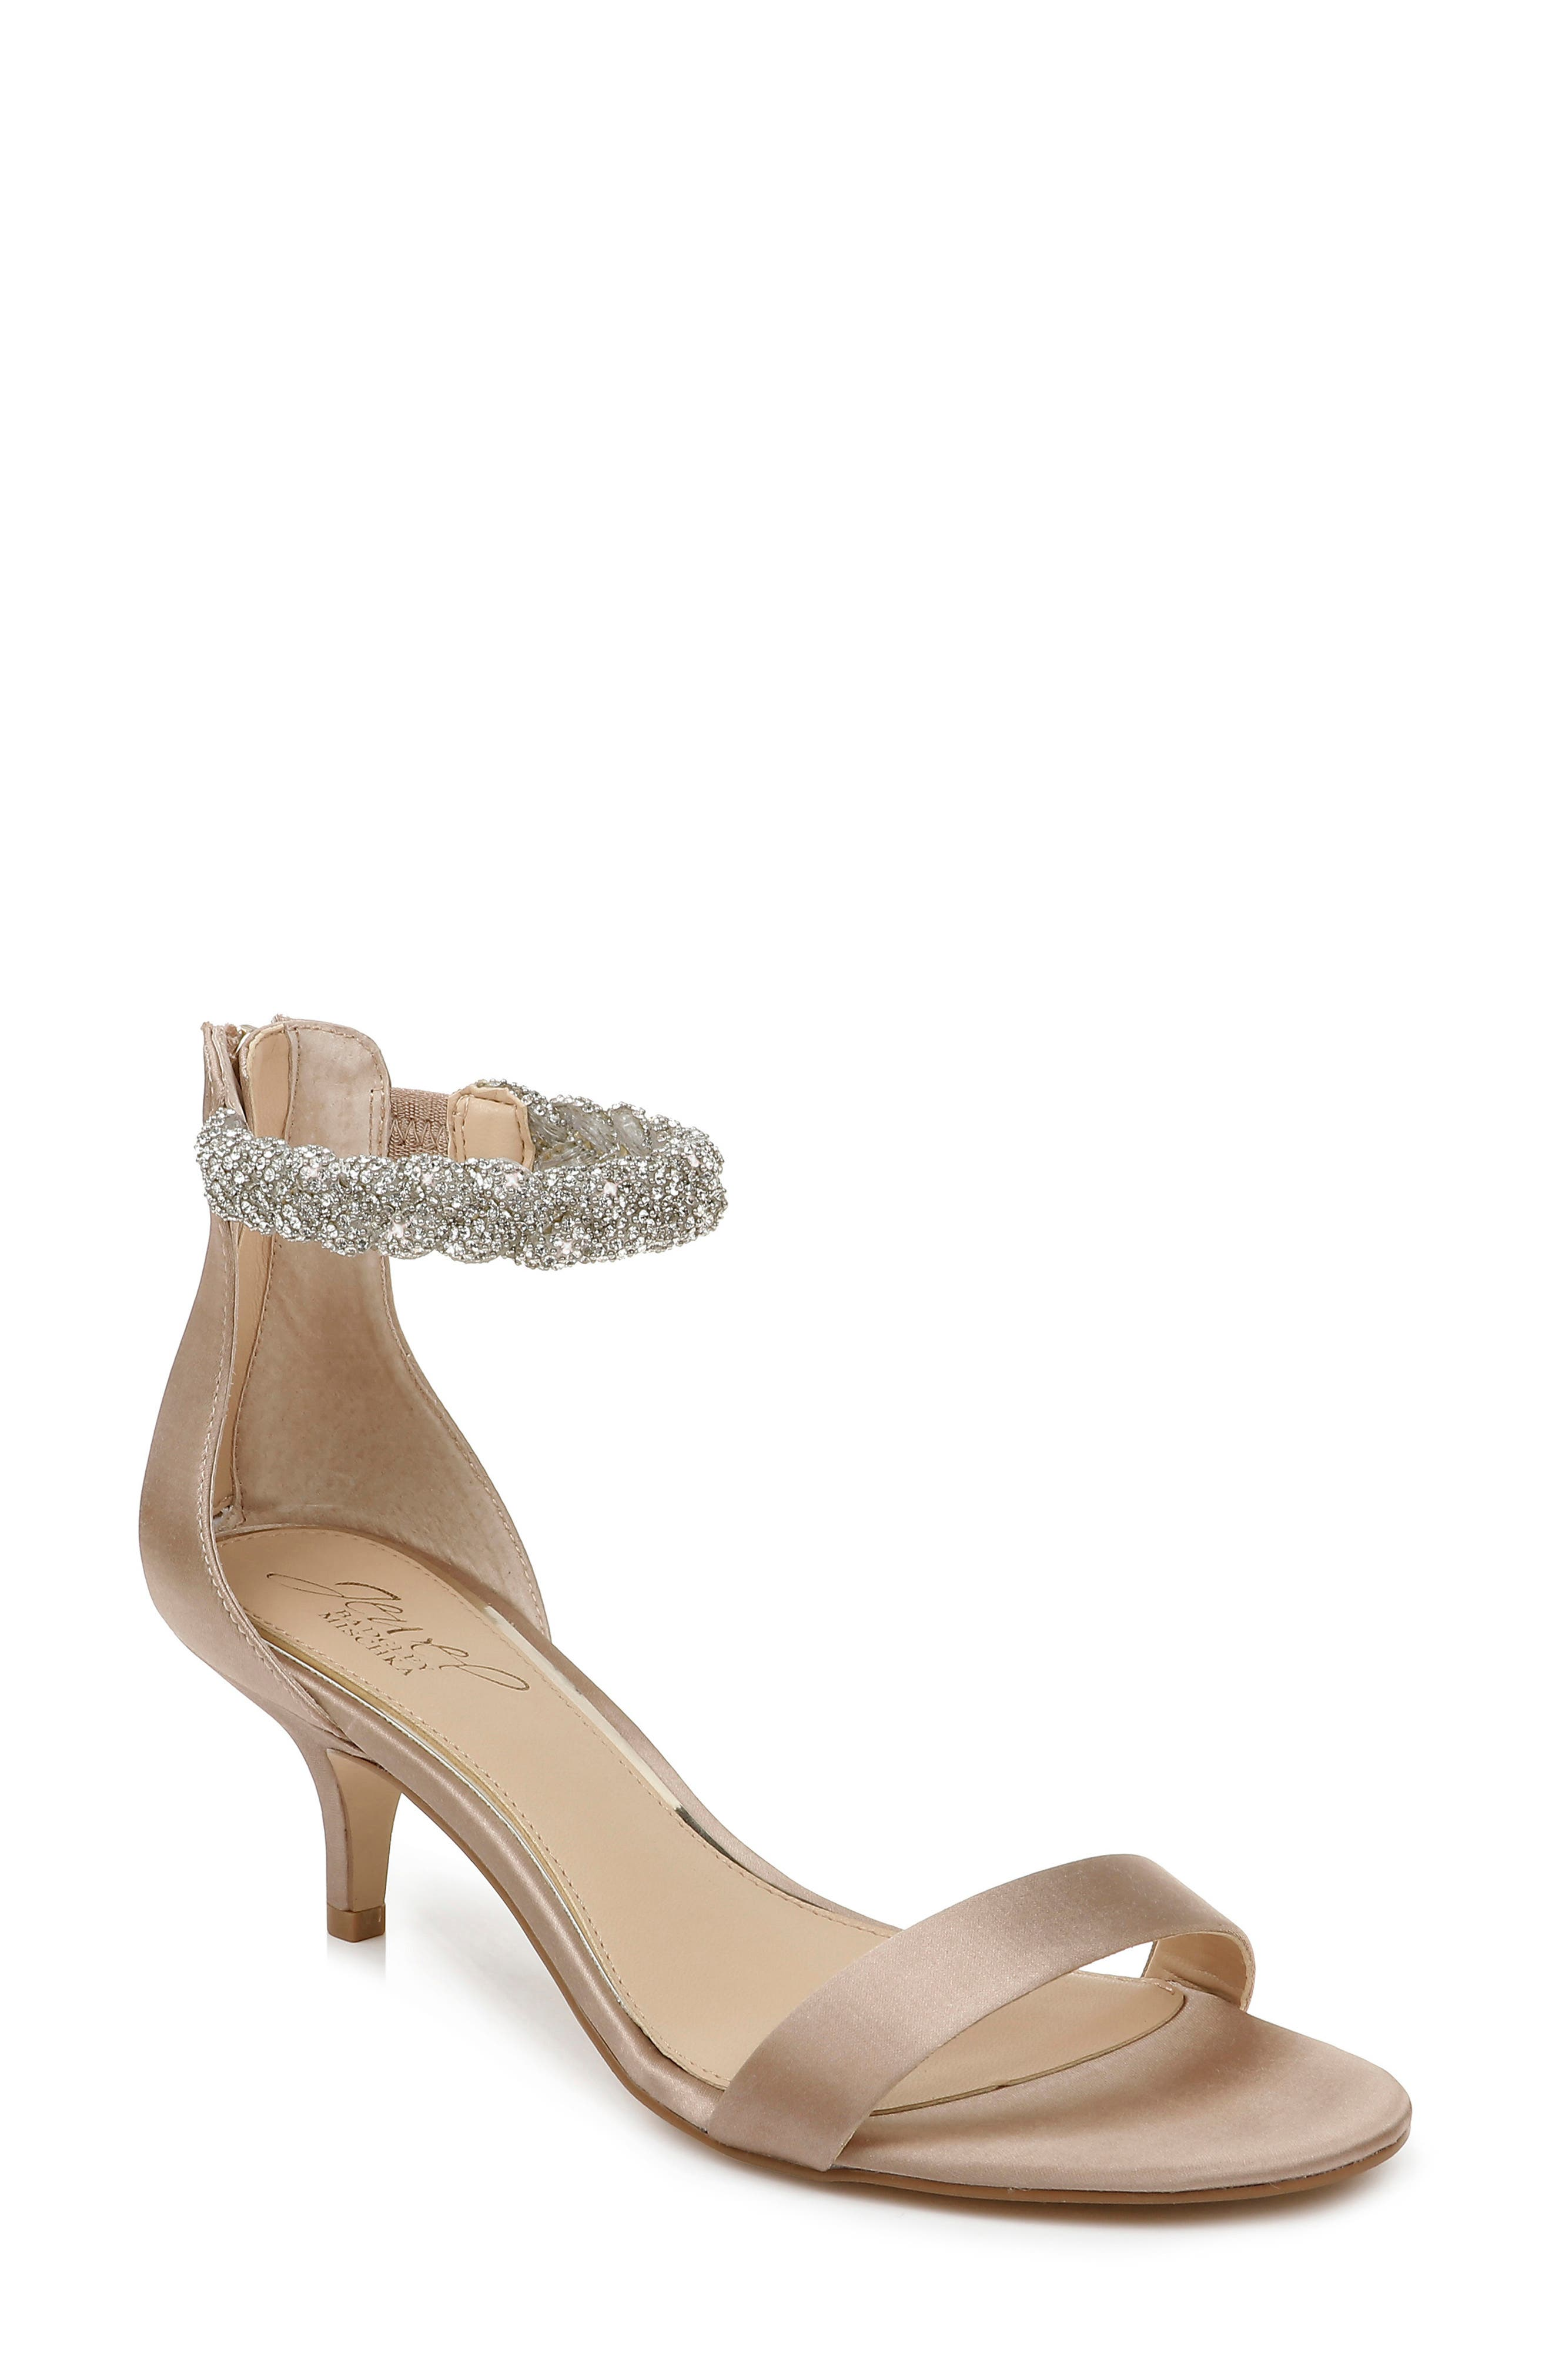 A flirty little kitten heel adds just-right height to an elegant satin sandal finished with a crystal-encrusted ankle strap. Style Name: Jewel Badgley Mischka Nepeta Embellished Sandal (Women). Style Number: 5998996. Available in stores.